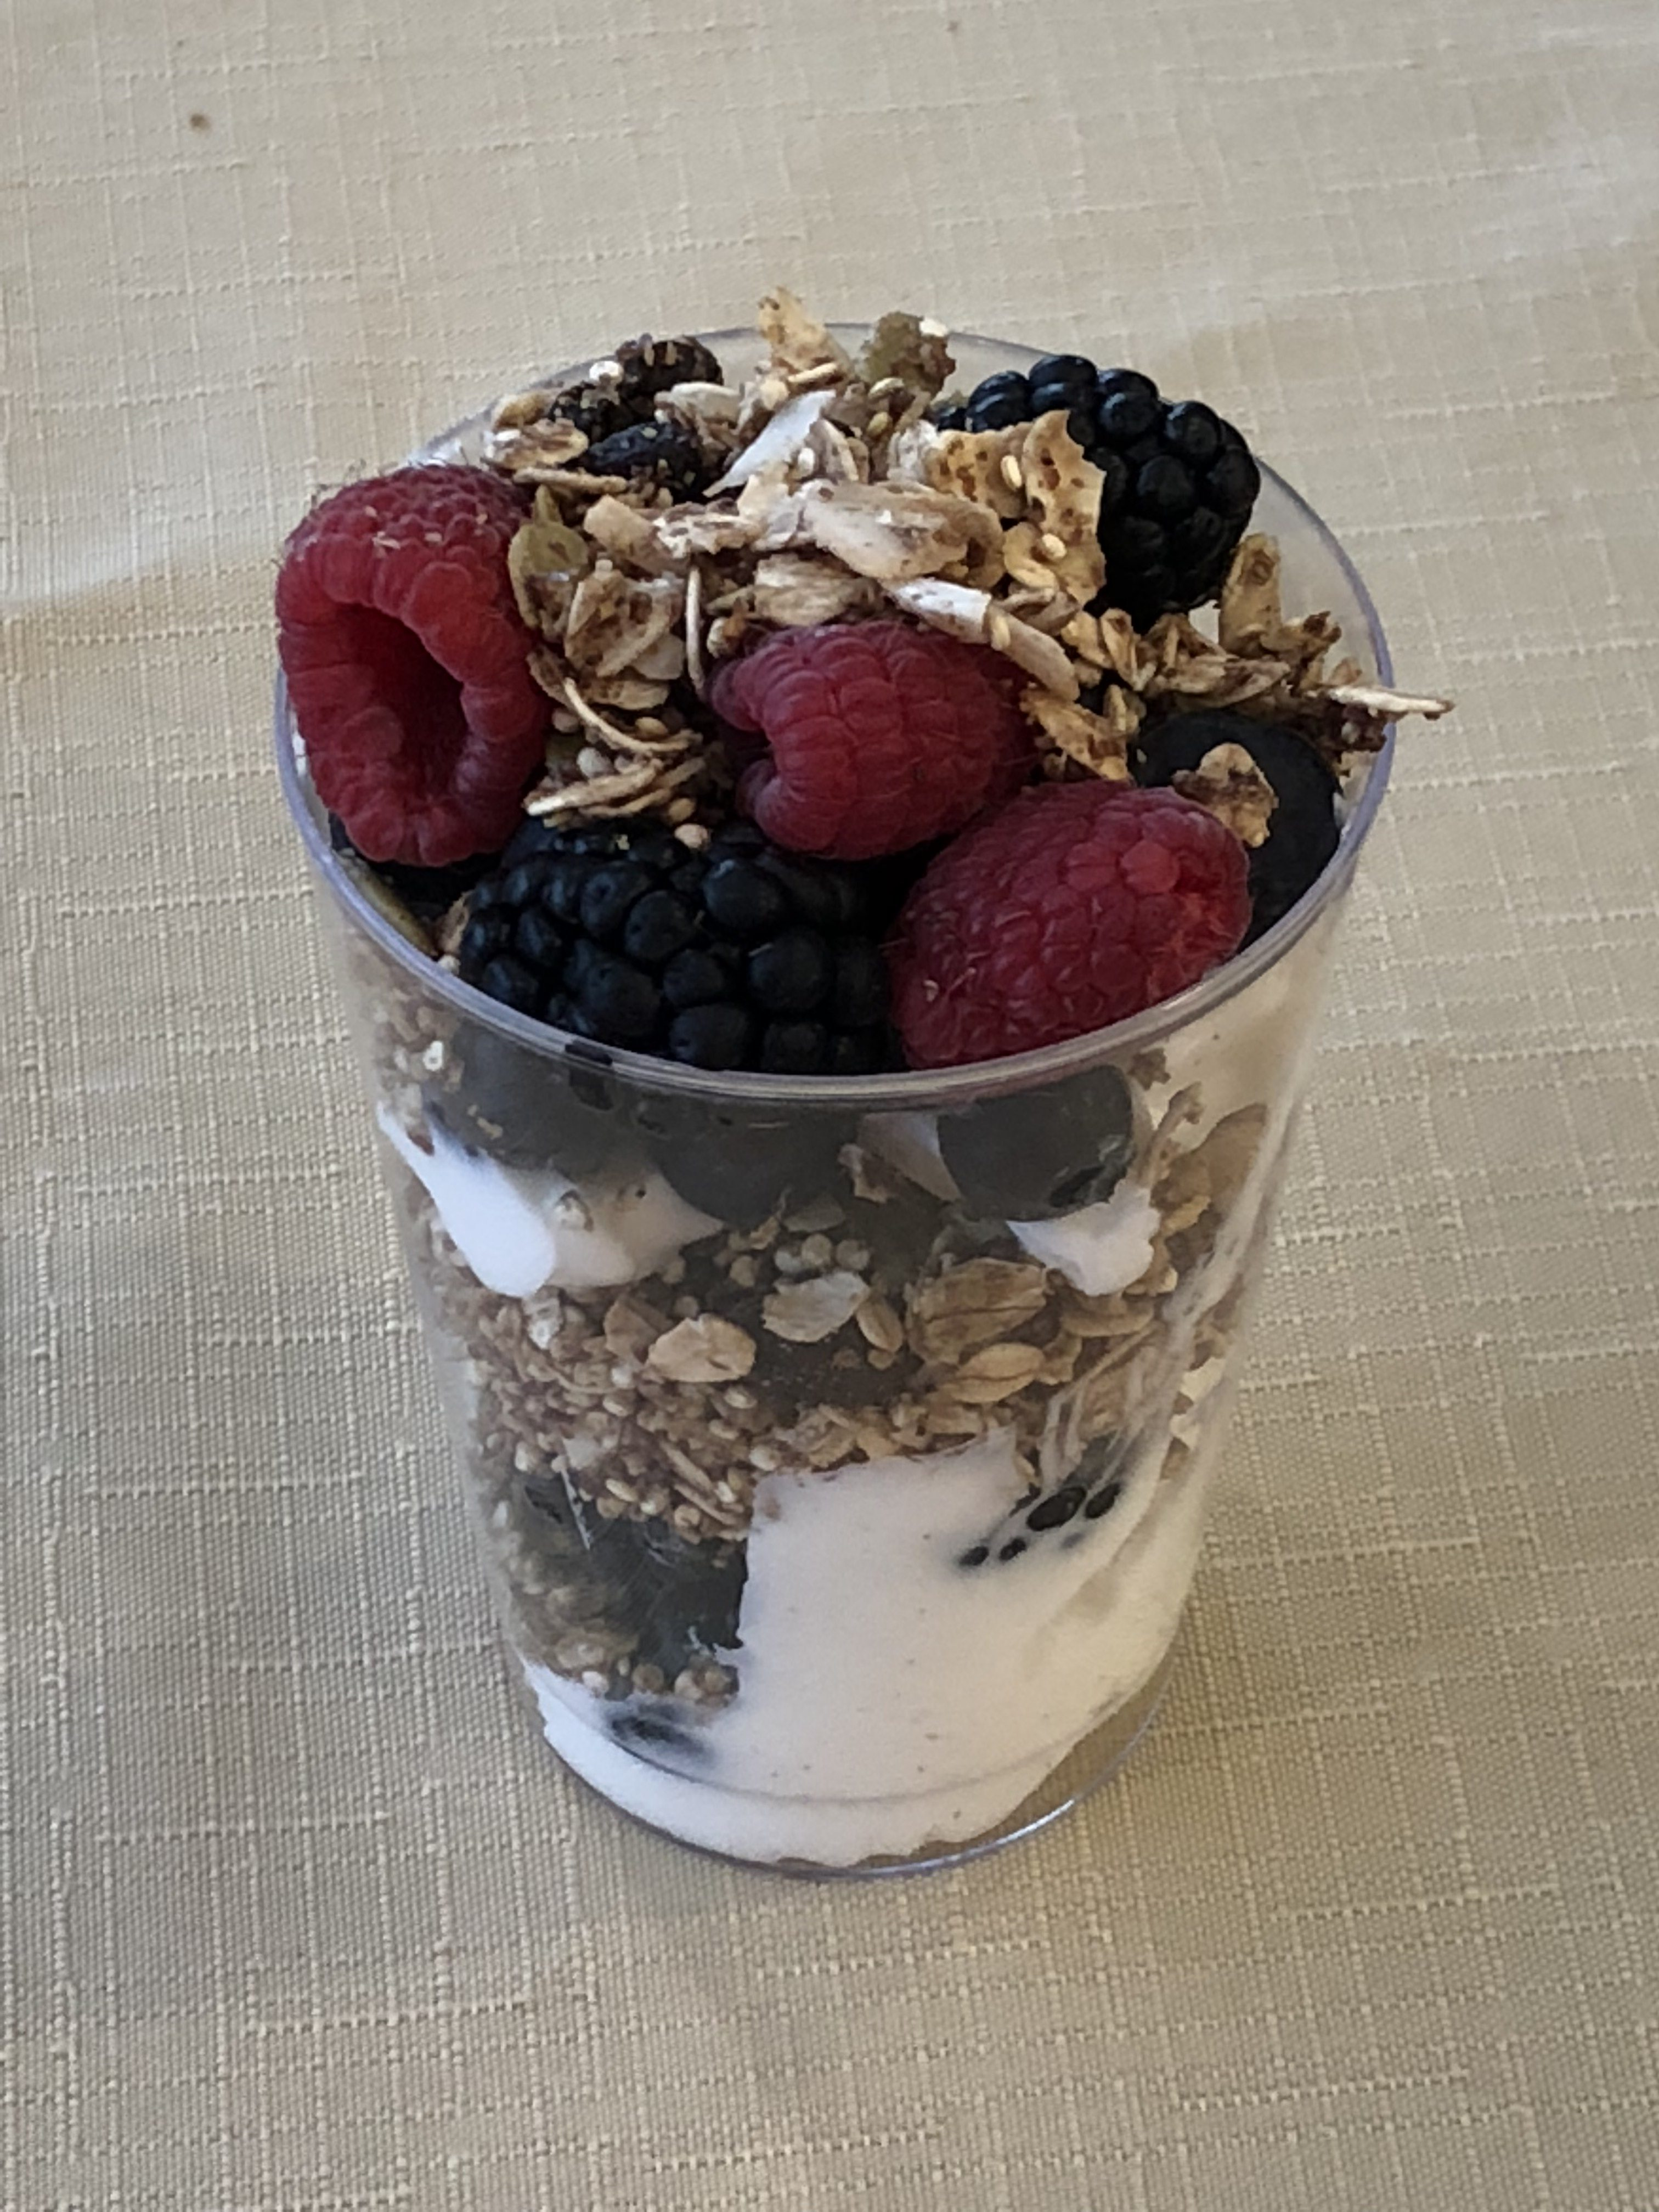 dieting plans include homemade granola